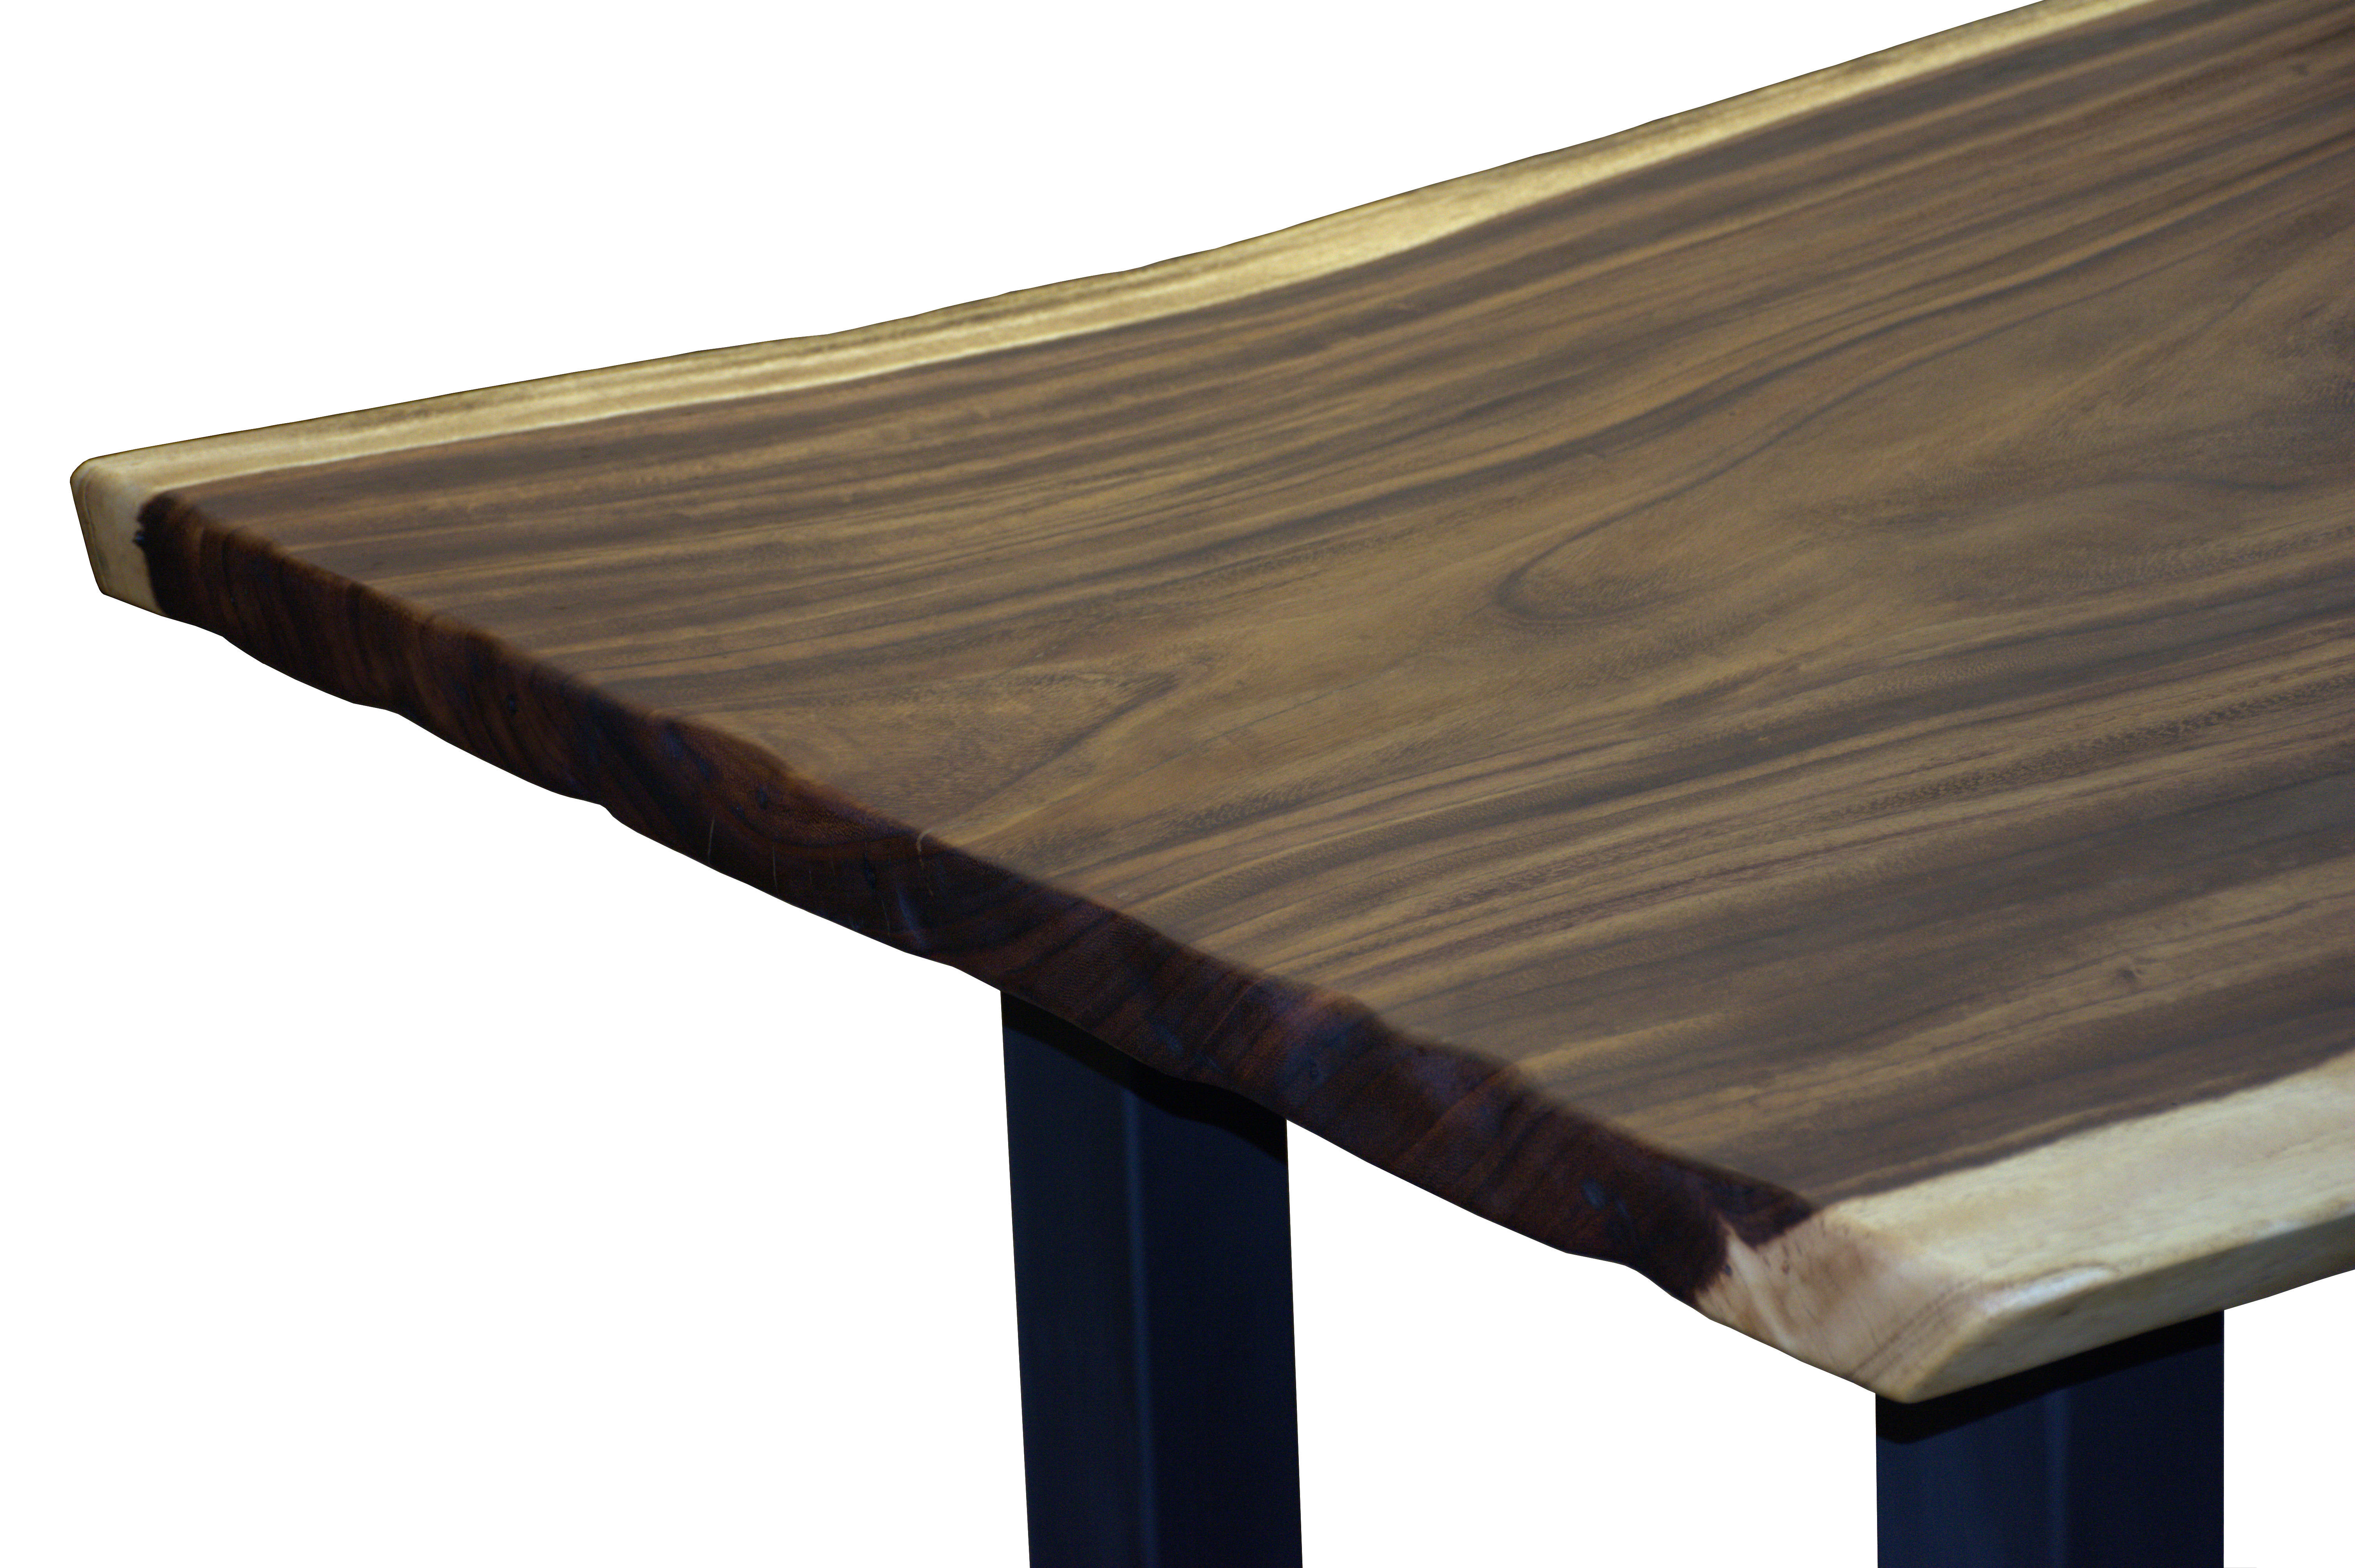 Custom dining table using a Guanacaste Slab Top with Natural Edges and ...